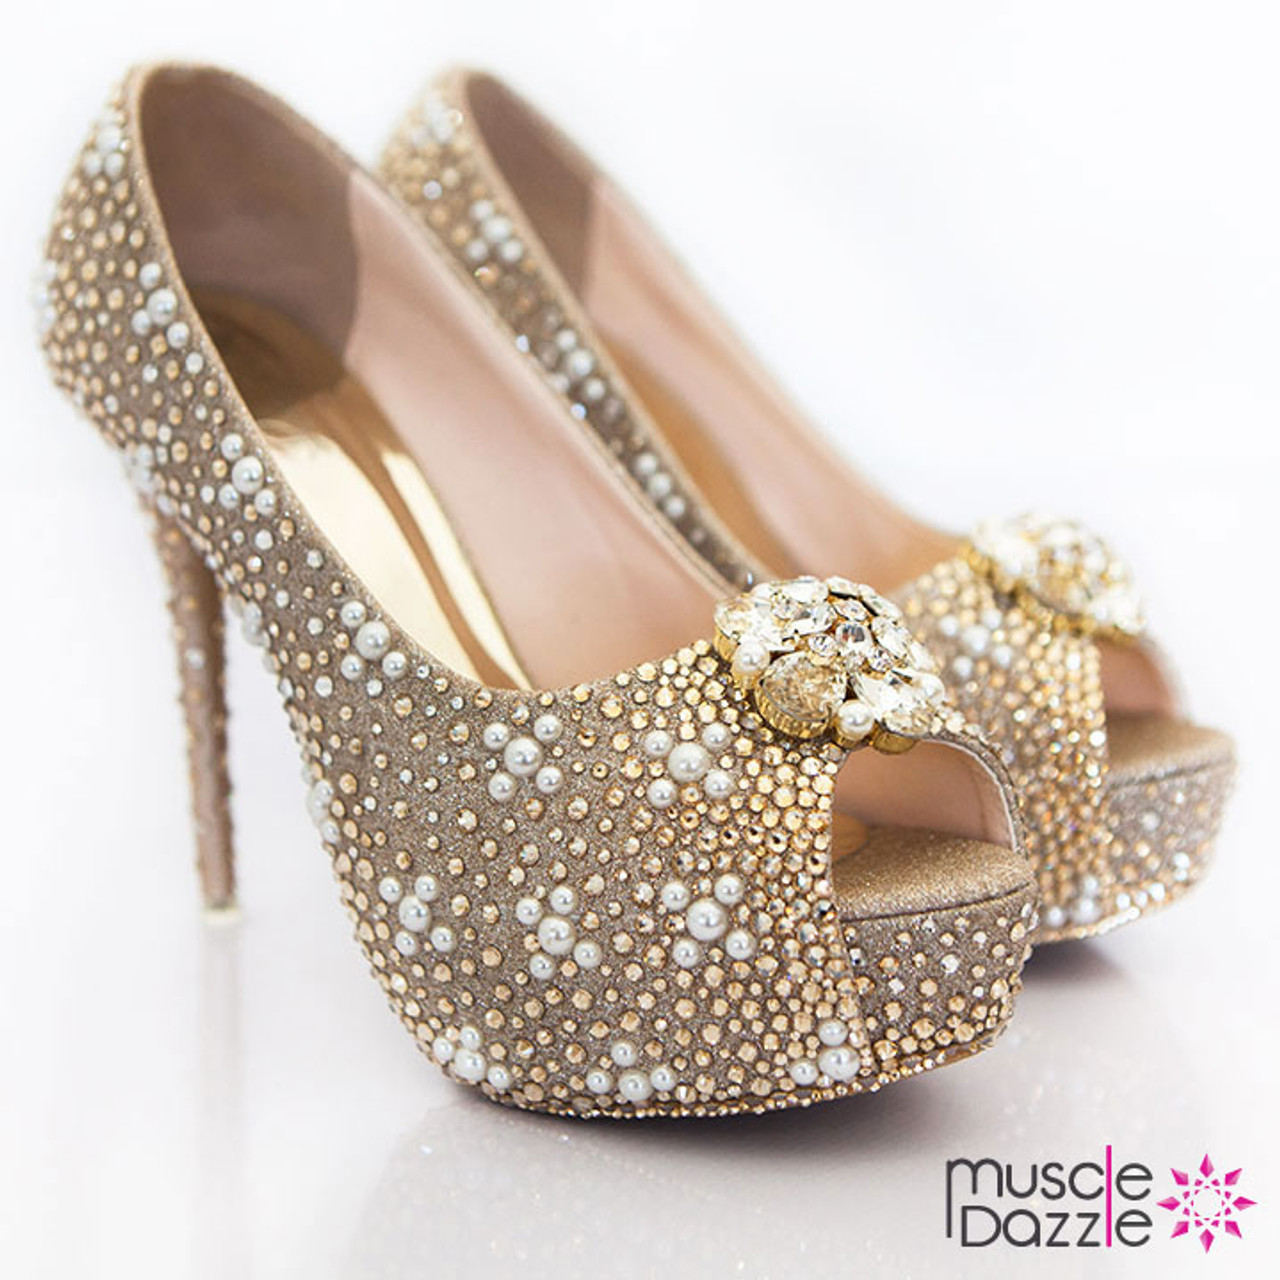 9a568793d6a High heel competition shoes crystals and pearls jpg 719x719 Pearl high heels